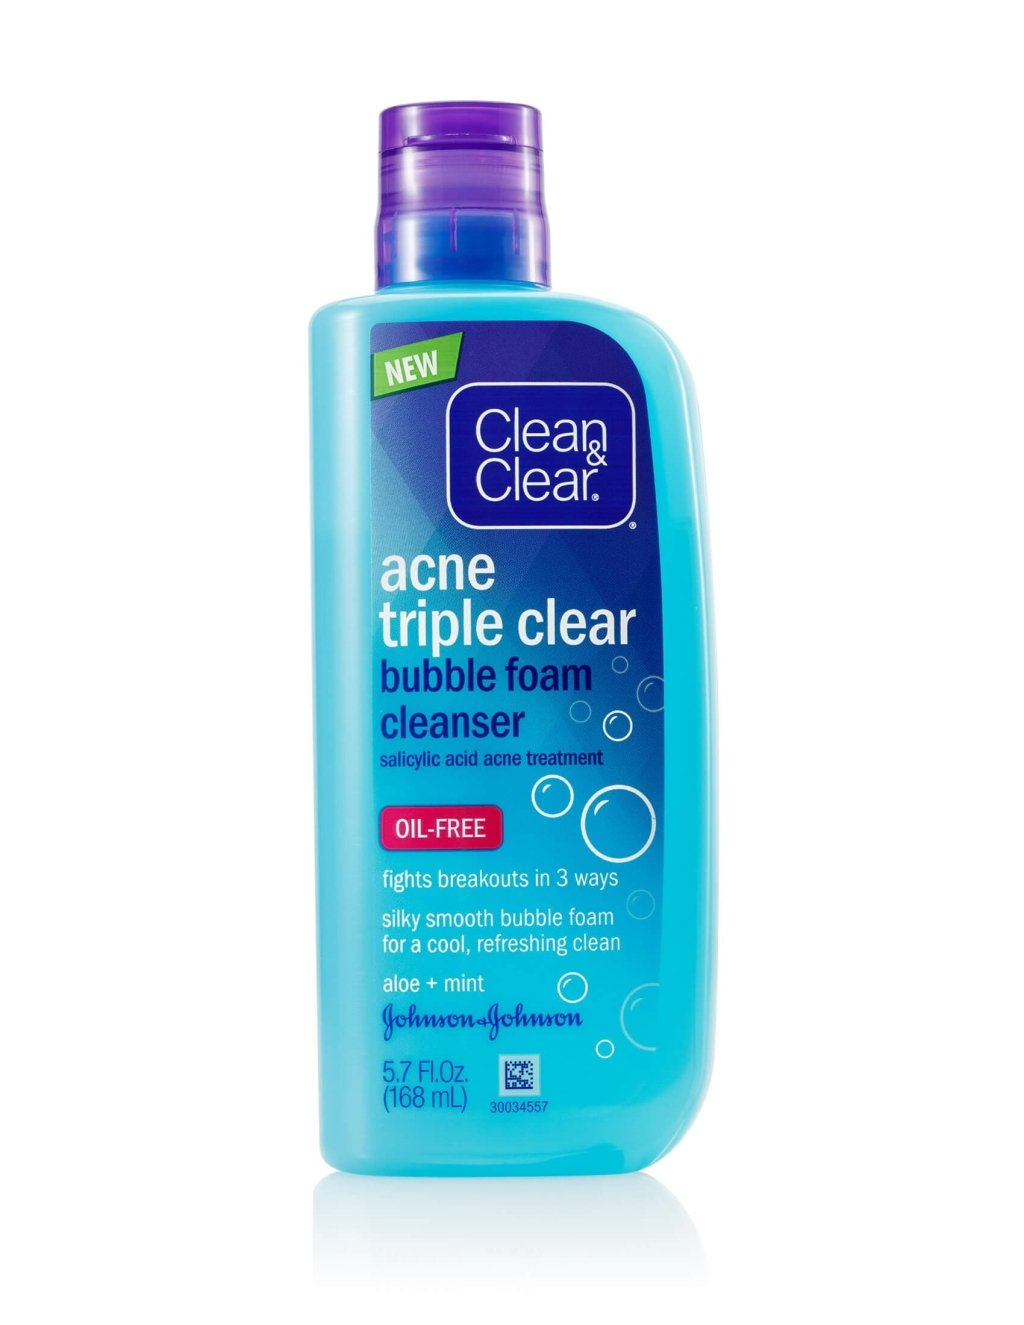 clean and clear acne triple clear cleanser review